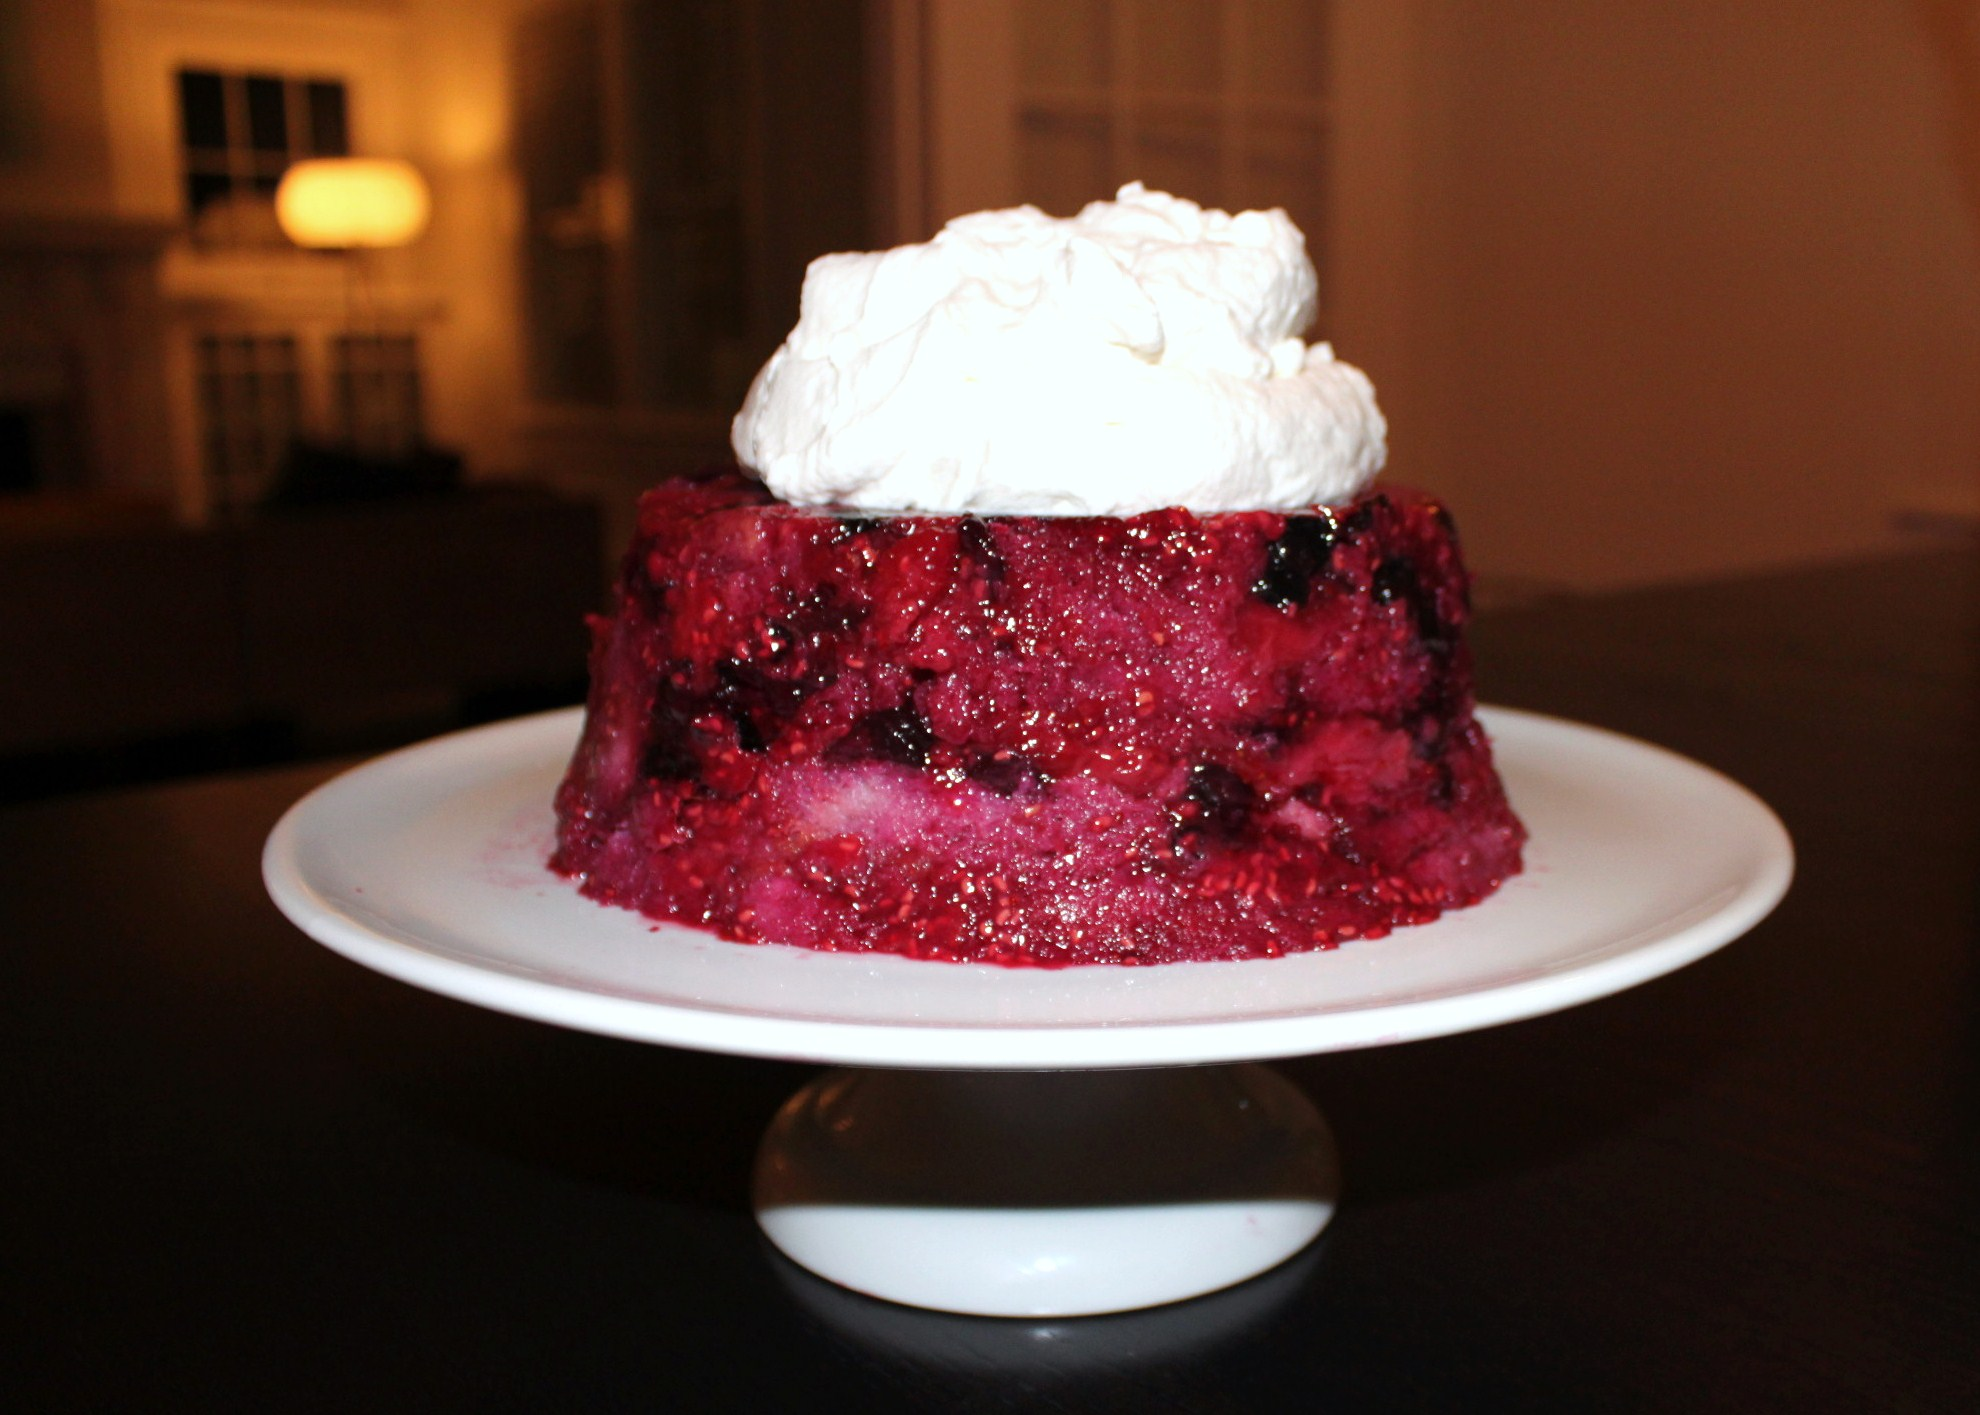 Ina Garten Picnic Summer Pudding With Rum Whipped Cream Mod Meals On